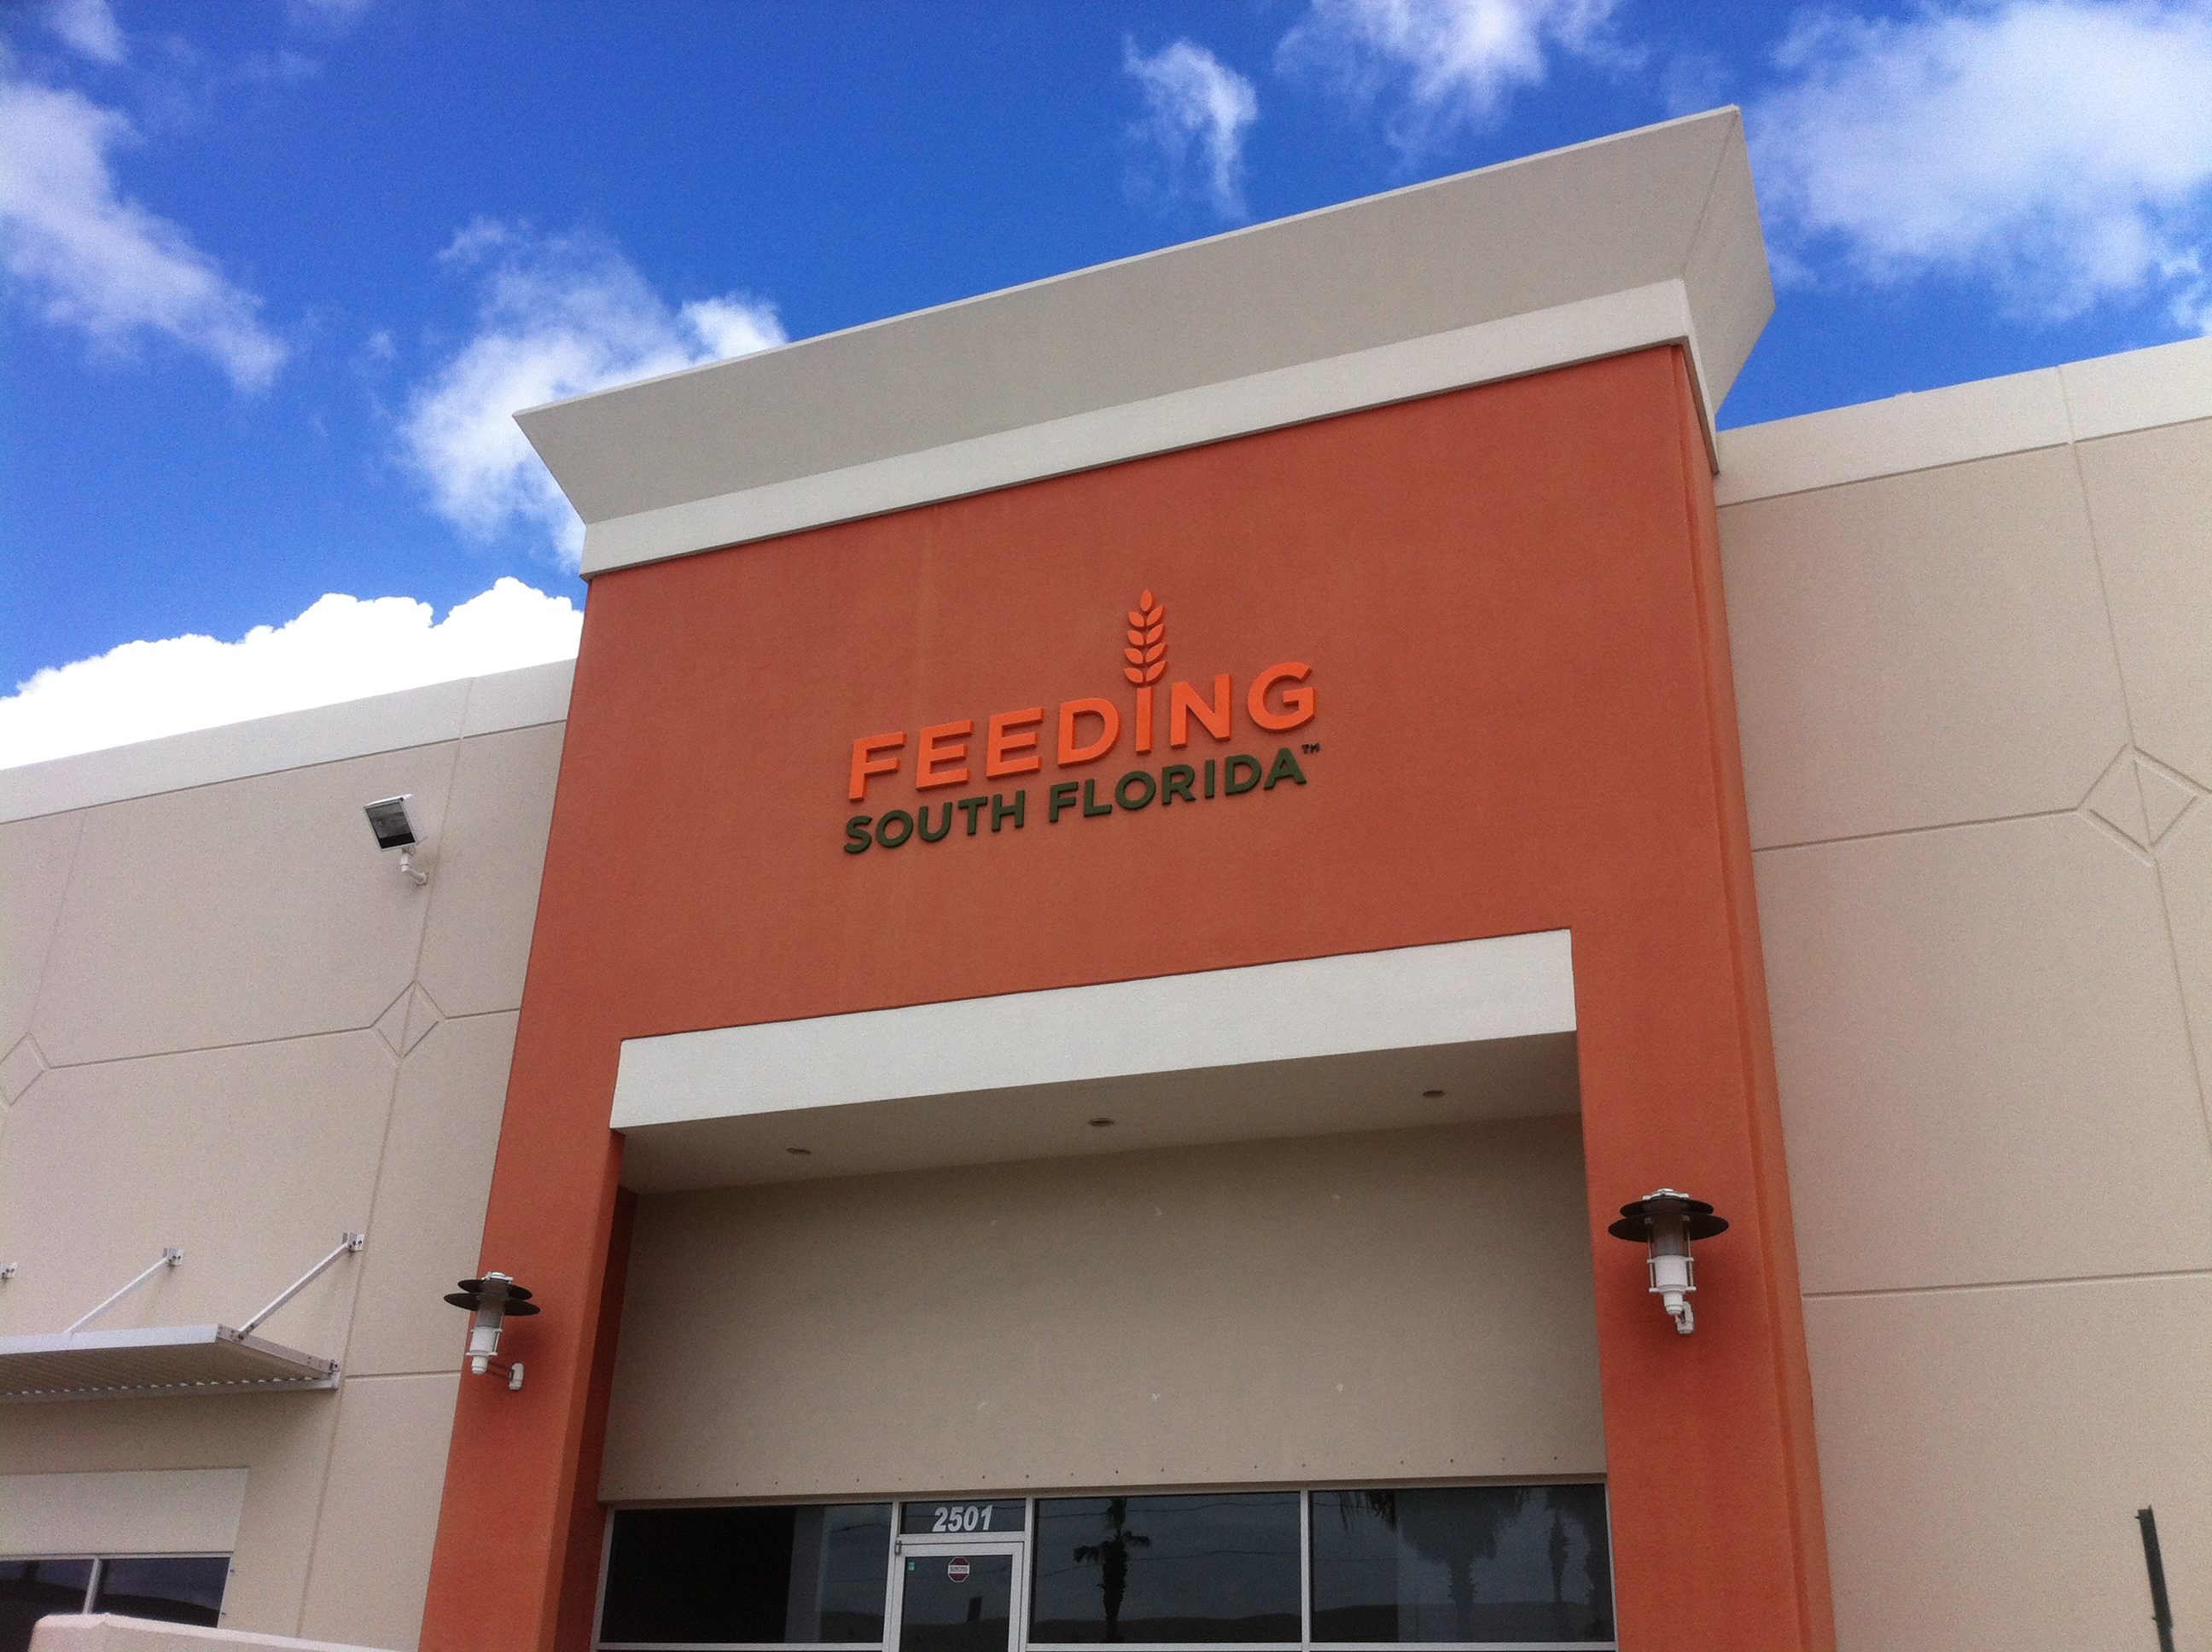 FSF merges the Miami facility with main facility in Broward County